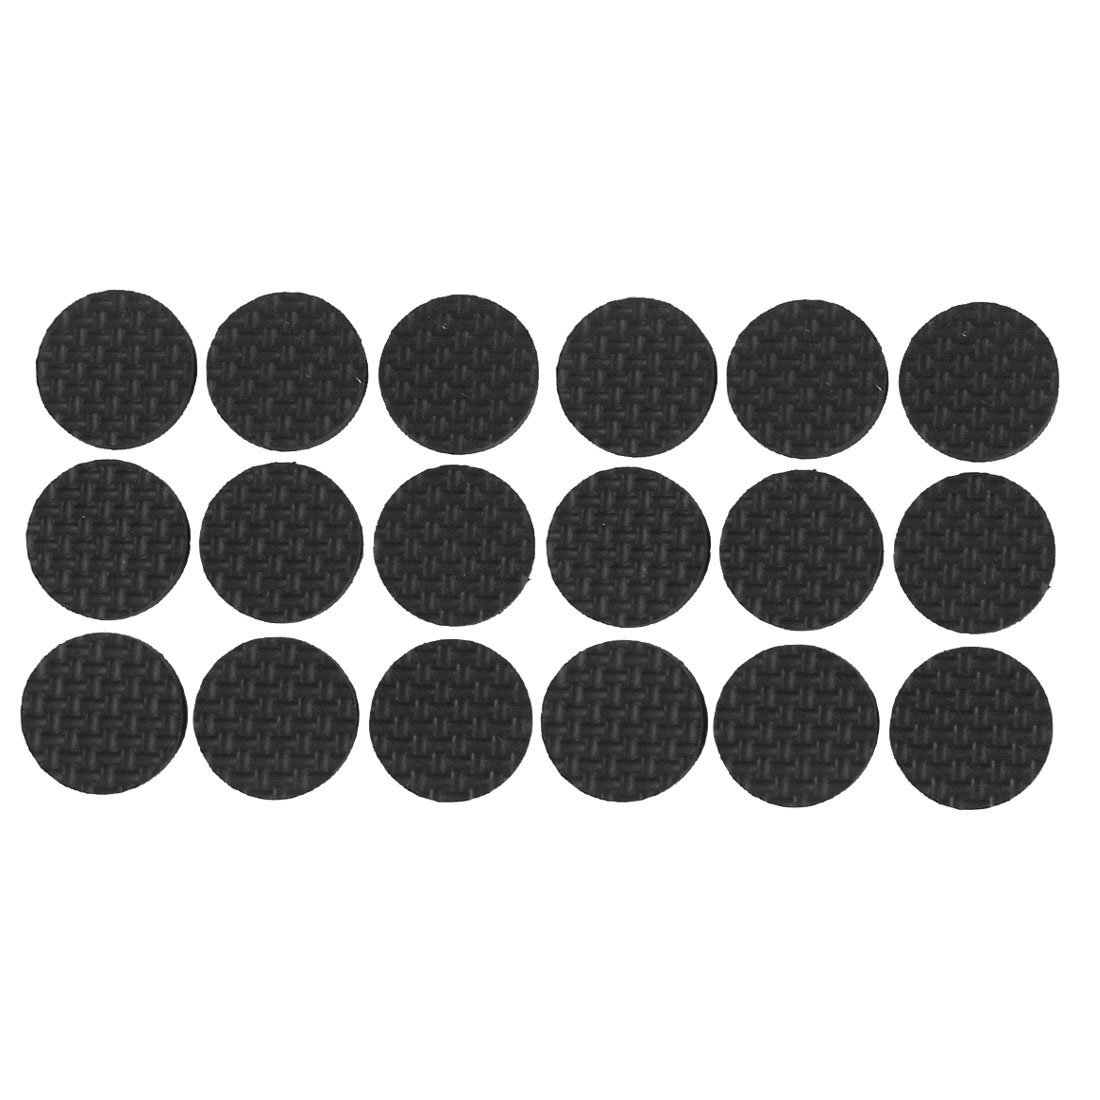 18 Pcs Self Adhesive Black Foam Table Chair Leg Pad Protector18 Pcs Self Adhesive Black Foam Table Chair Leg Pad Protector